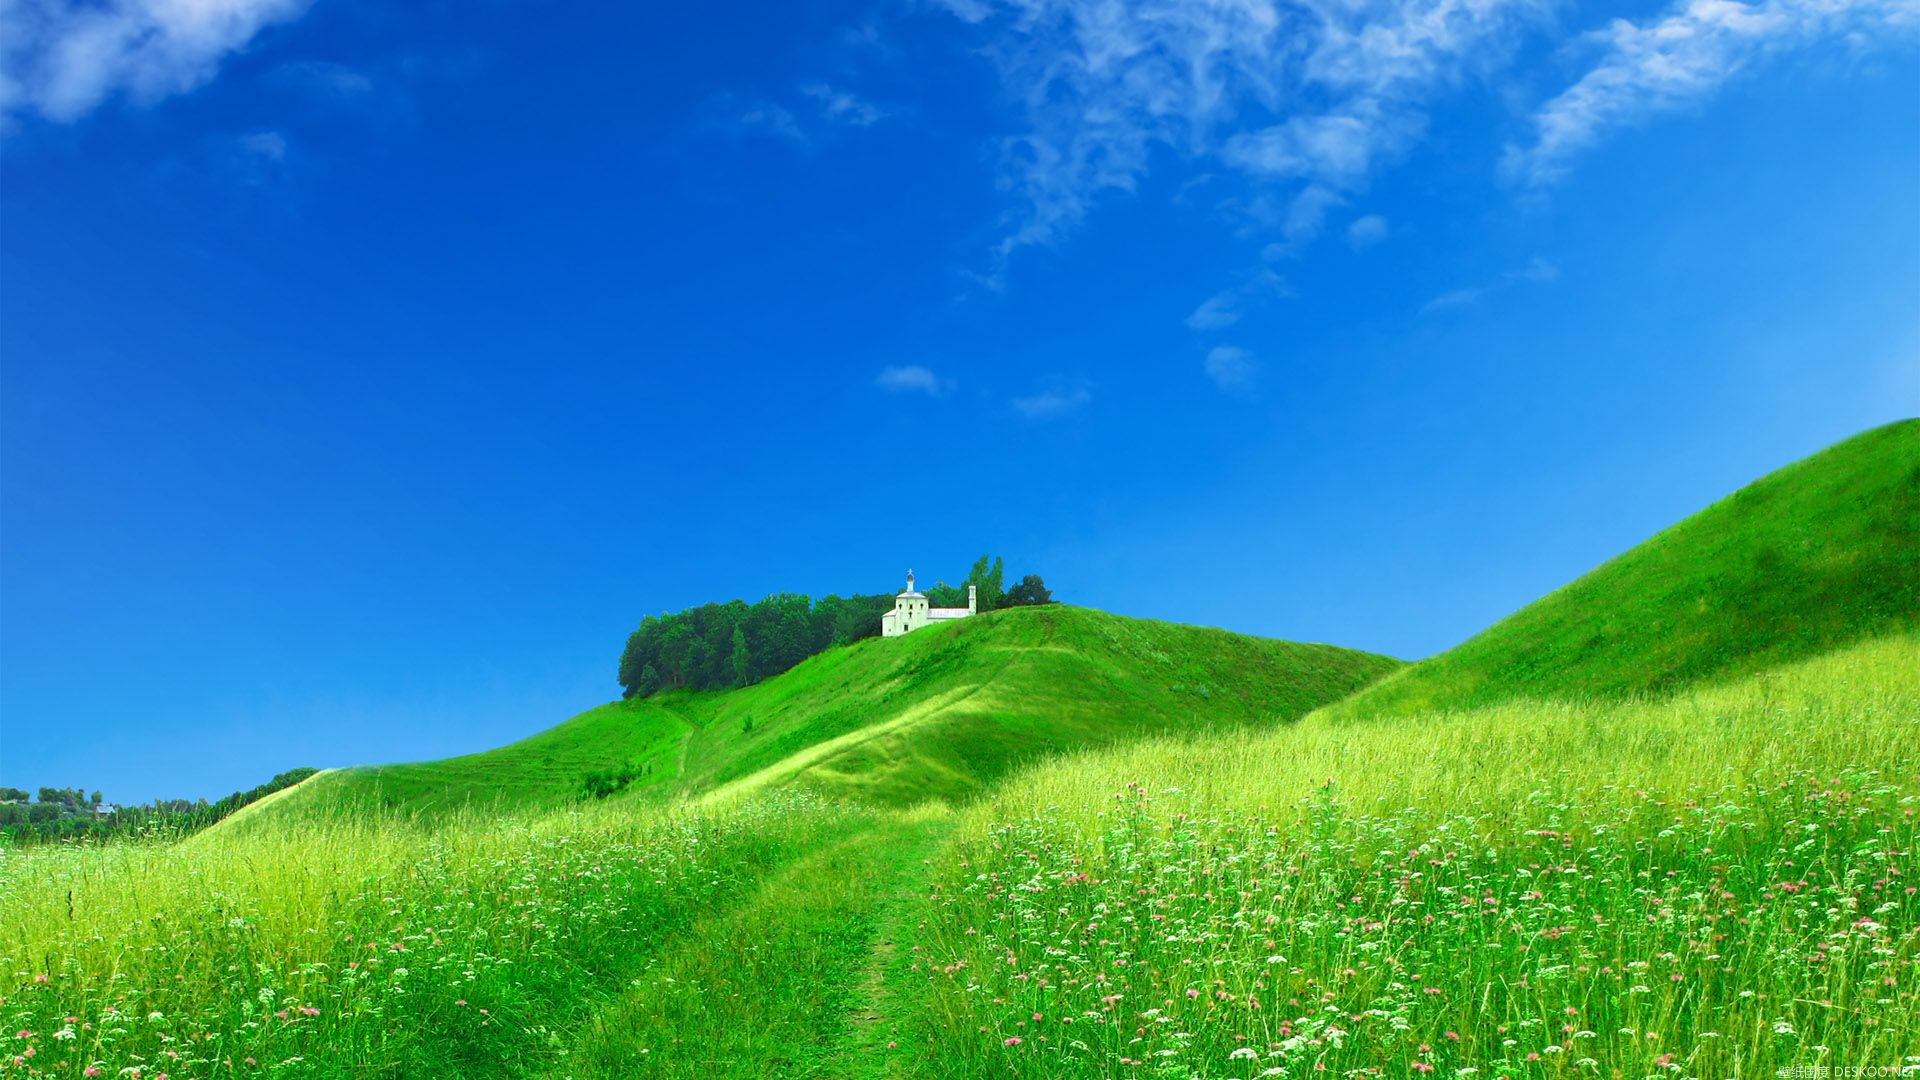 landscape, wallpaper, fengjingbizhi, allimg, upimg, green